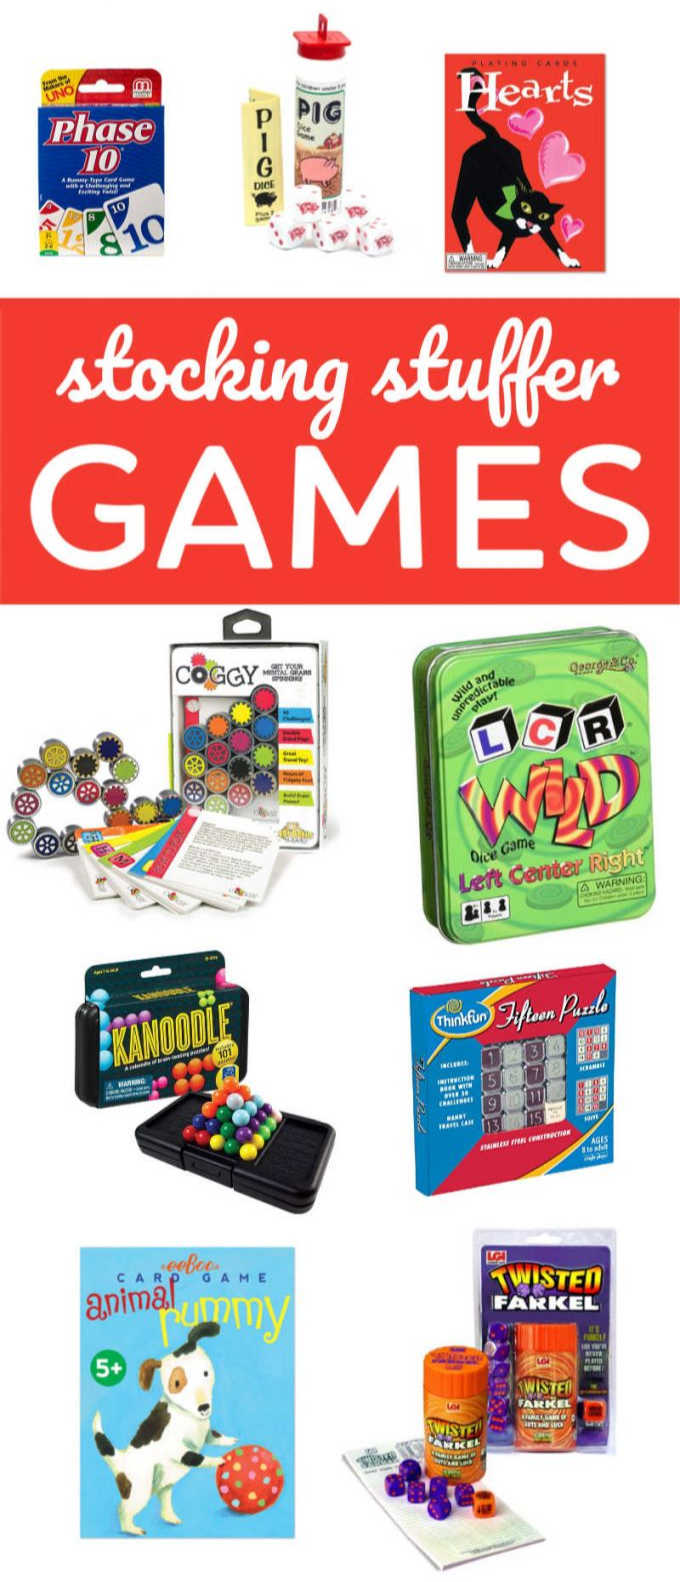 Family games that make great stocking stuffers for kids and fun-loving adults. Card games, dice games and single-player logic games will keep everyone busy after all the gifts have been opened. These games are for the whole family and are great travel games! #games